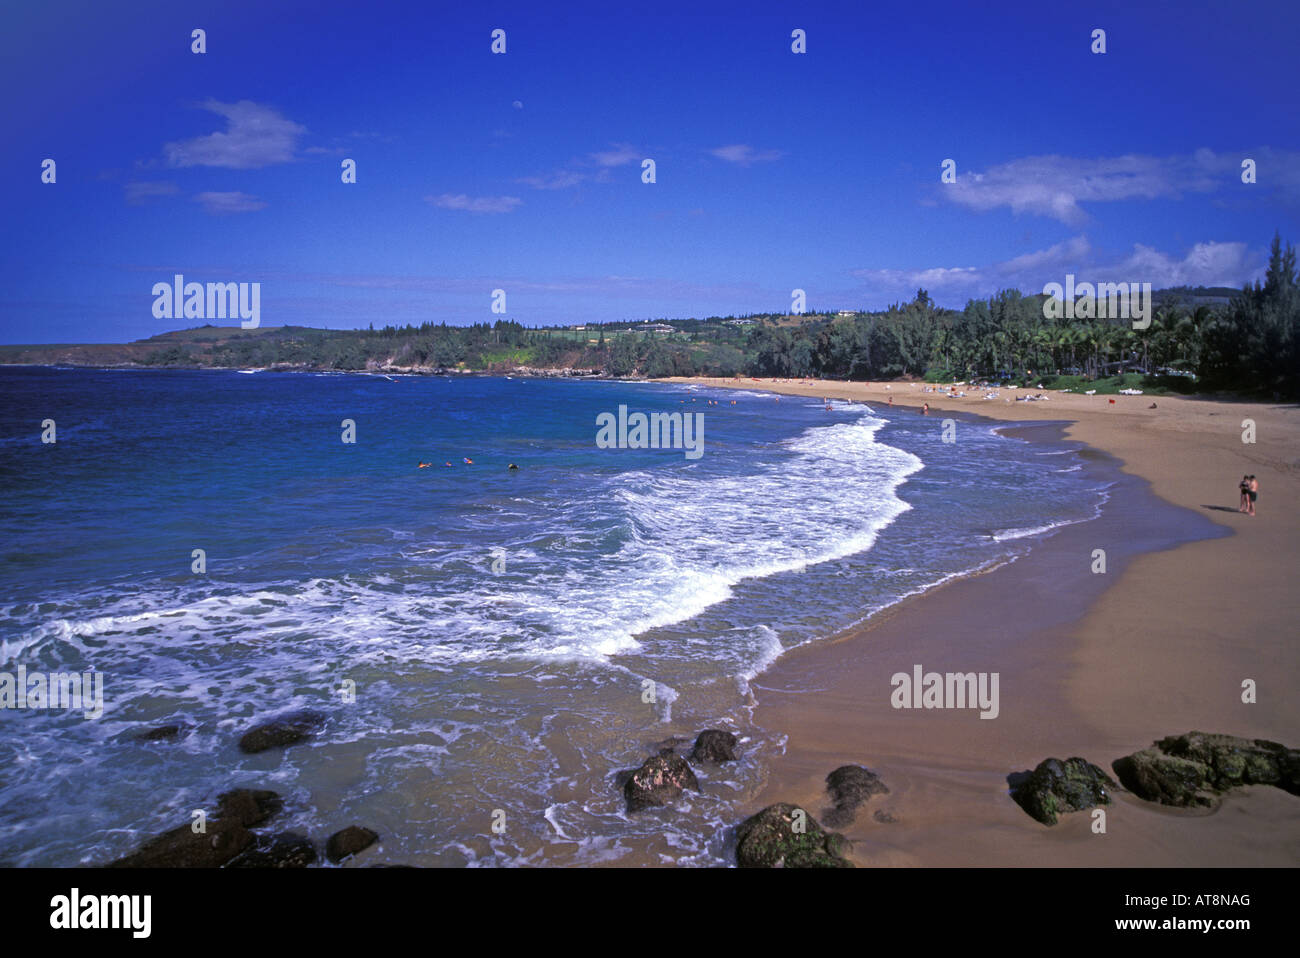 A sprinkling of tourists dot the secluded Flemings Beach Park at Kapalua on the island of Maui. - Stock Image